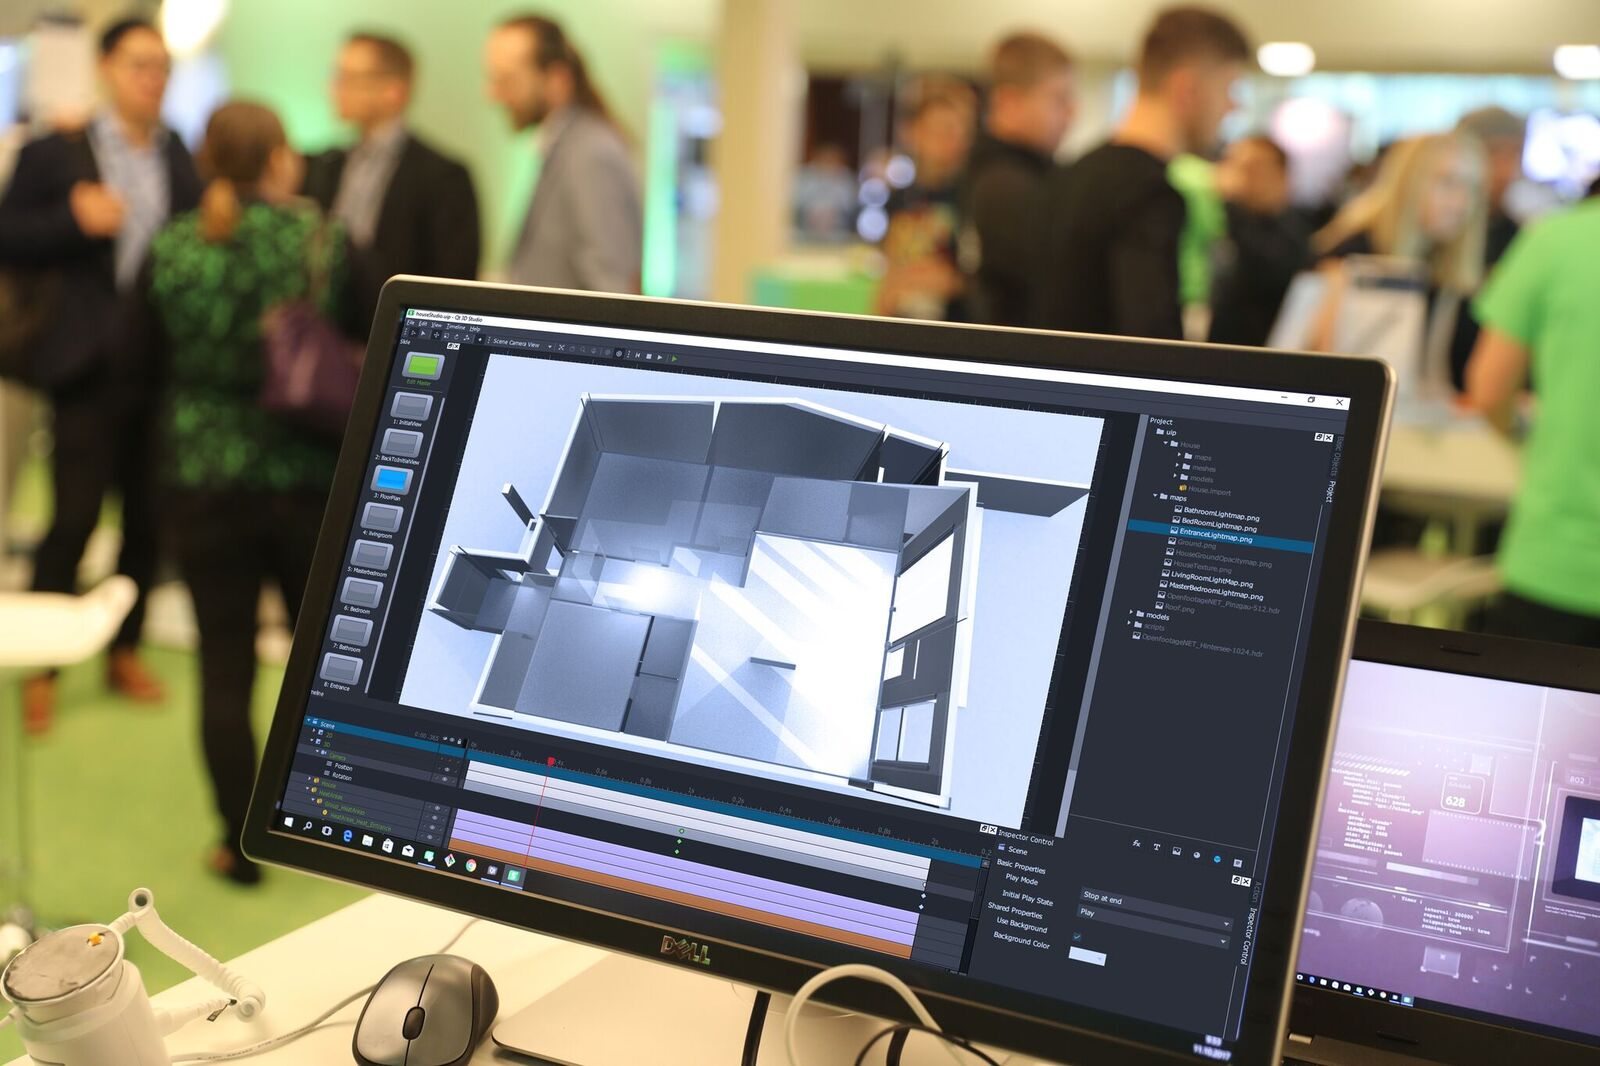 Qt 5 10 Released with Qt 3D Studio Graphical Editor, Numerous